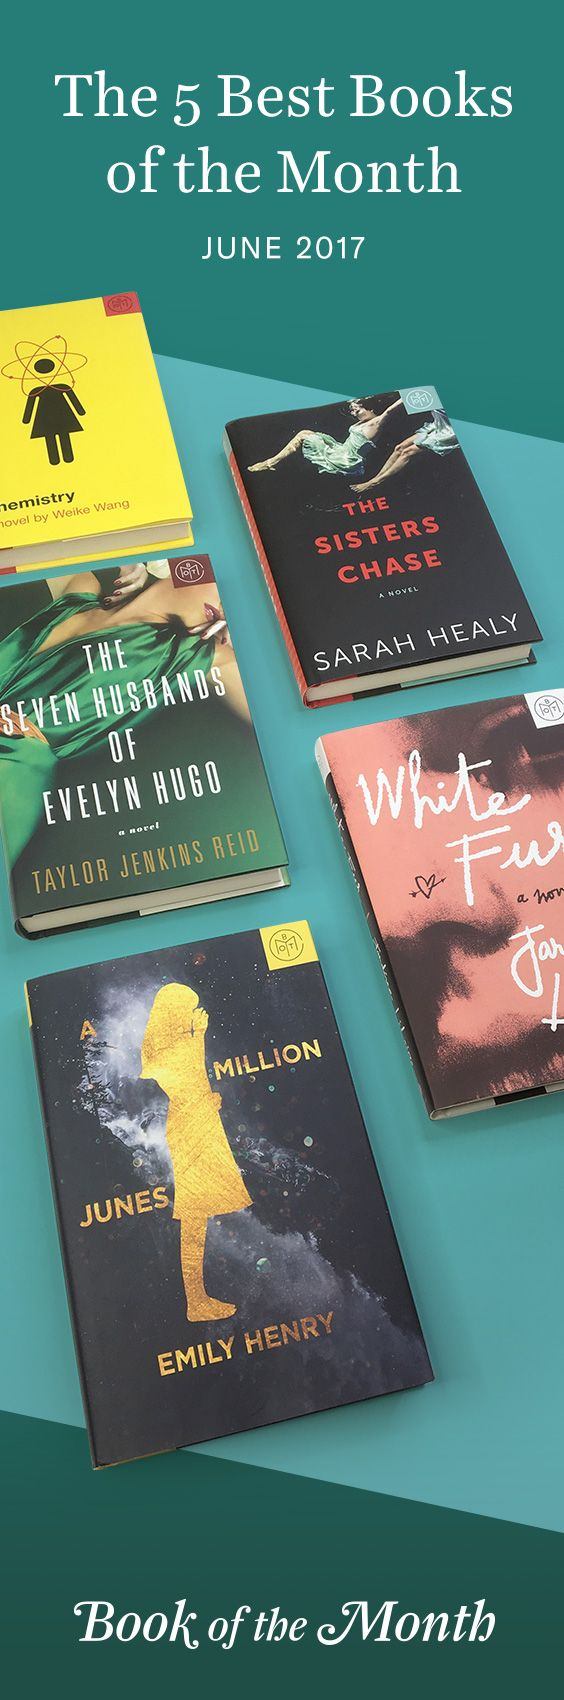 The five best books of June 2017. Head to bookofthemonth.com to learn more and start reading for $10 per book.